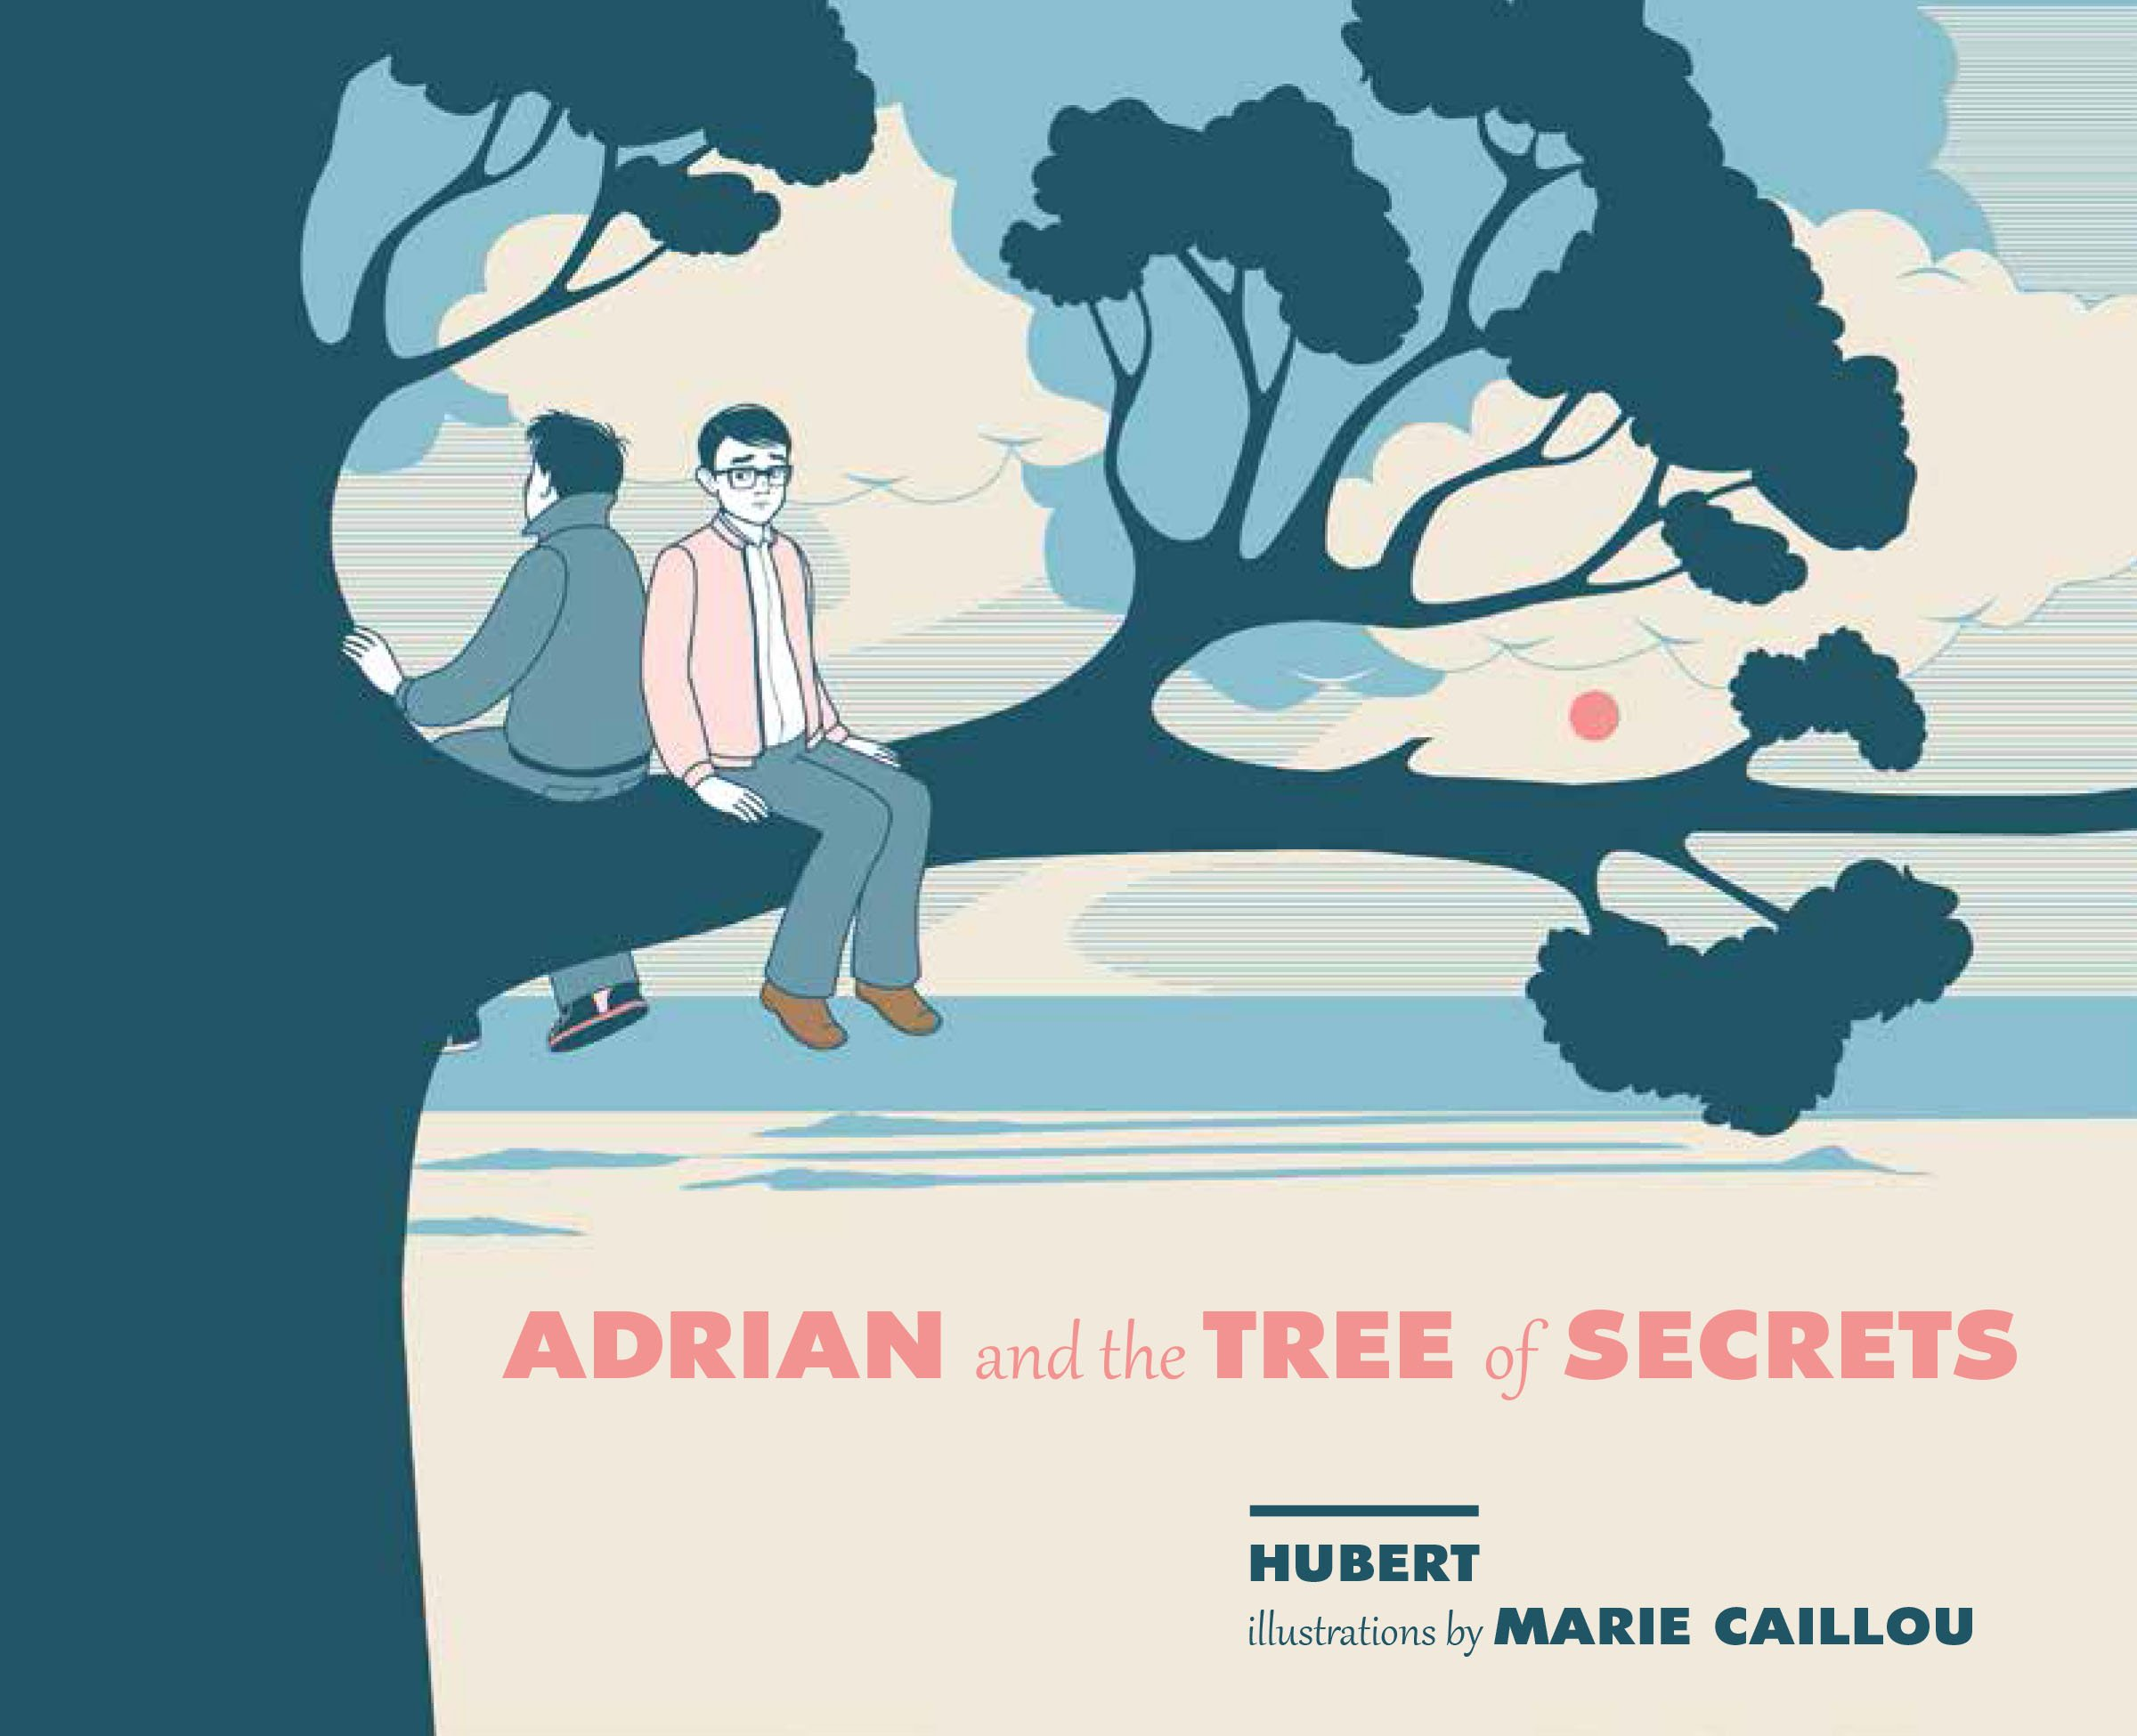 Adrian and the Tree of Secrets